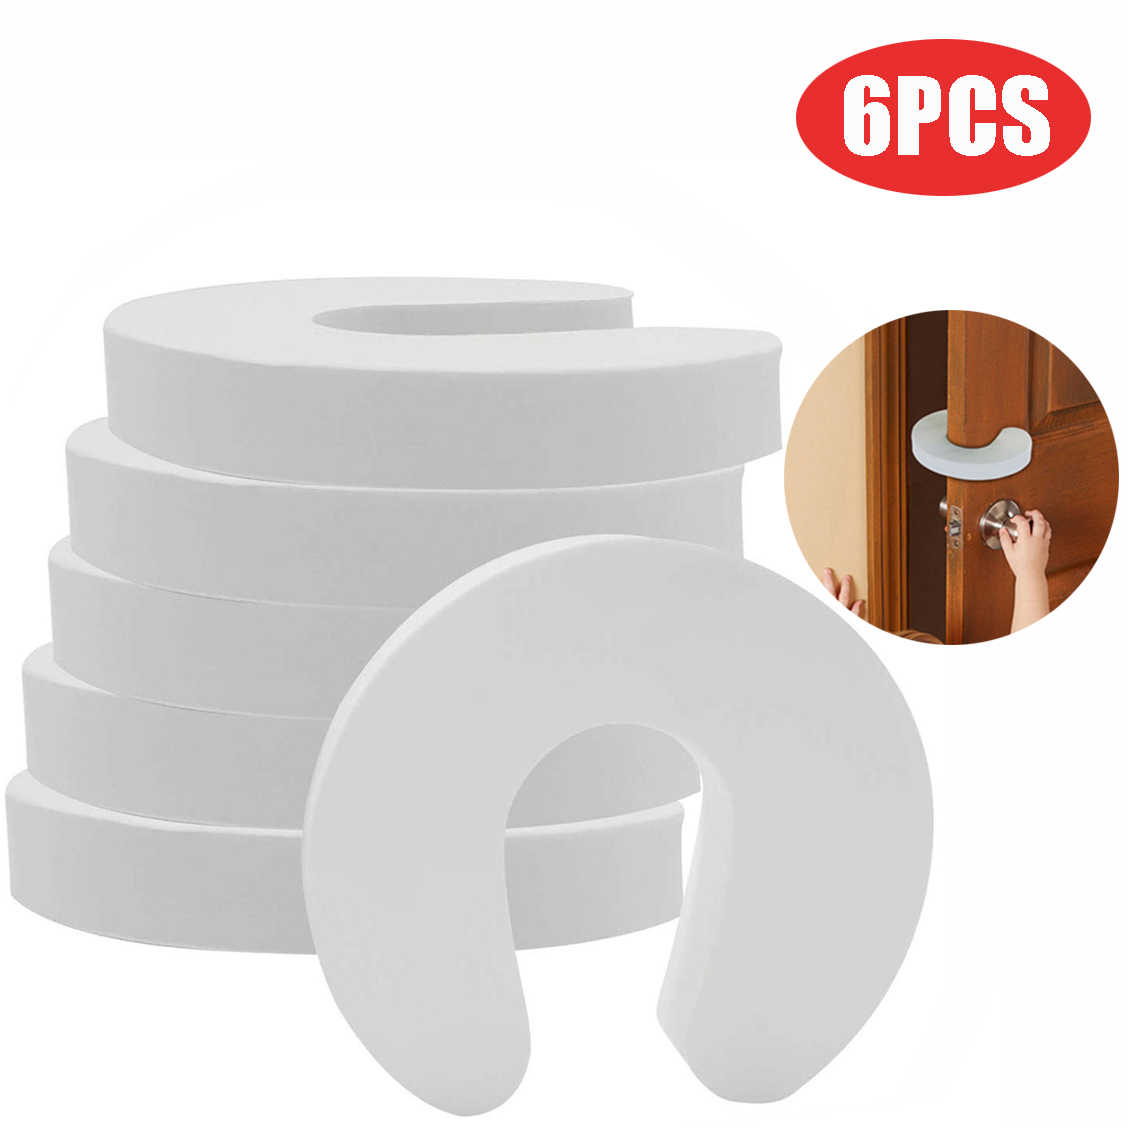 6PCS Doorways Gates Decorative Door Baby Care Soft Reusable C Shaped Door Safety Finger Guards For Cabinet Drawer Door #10